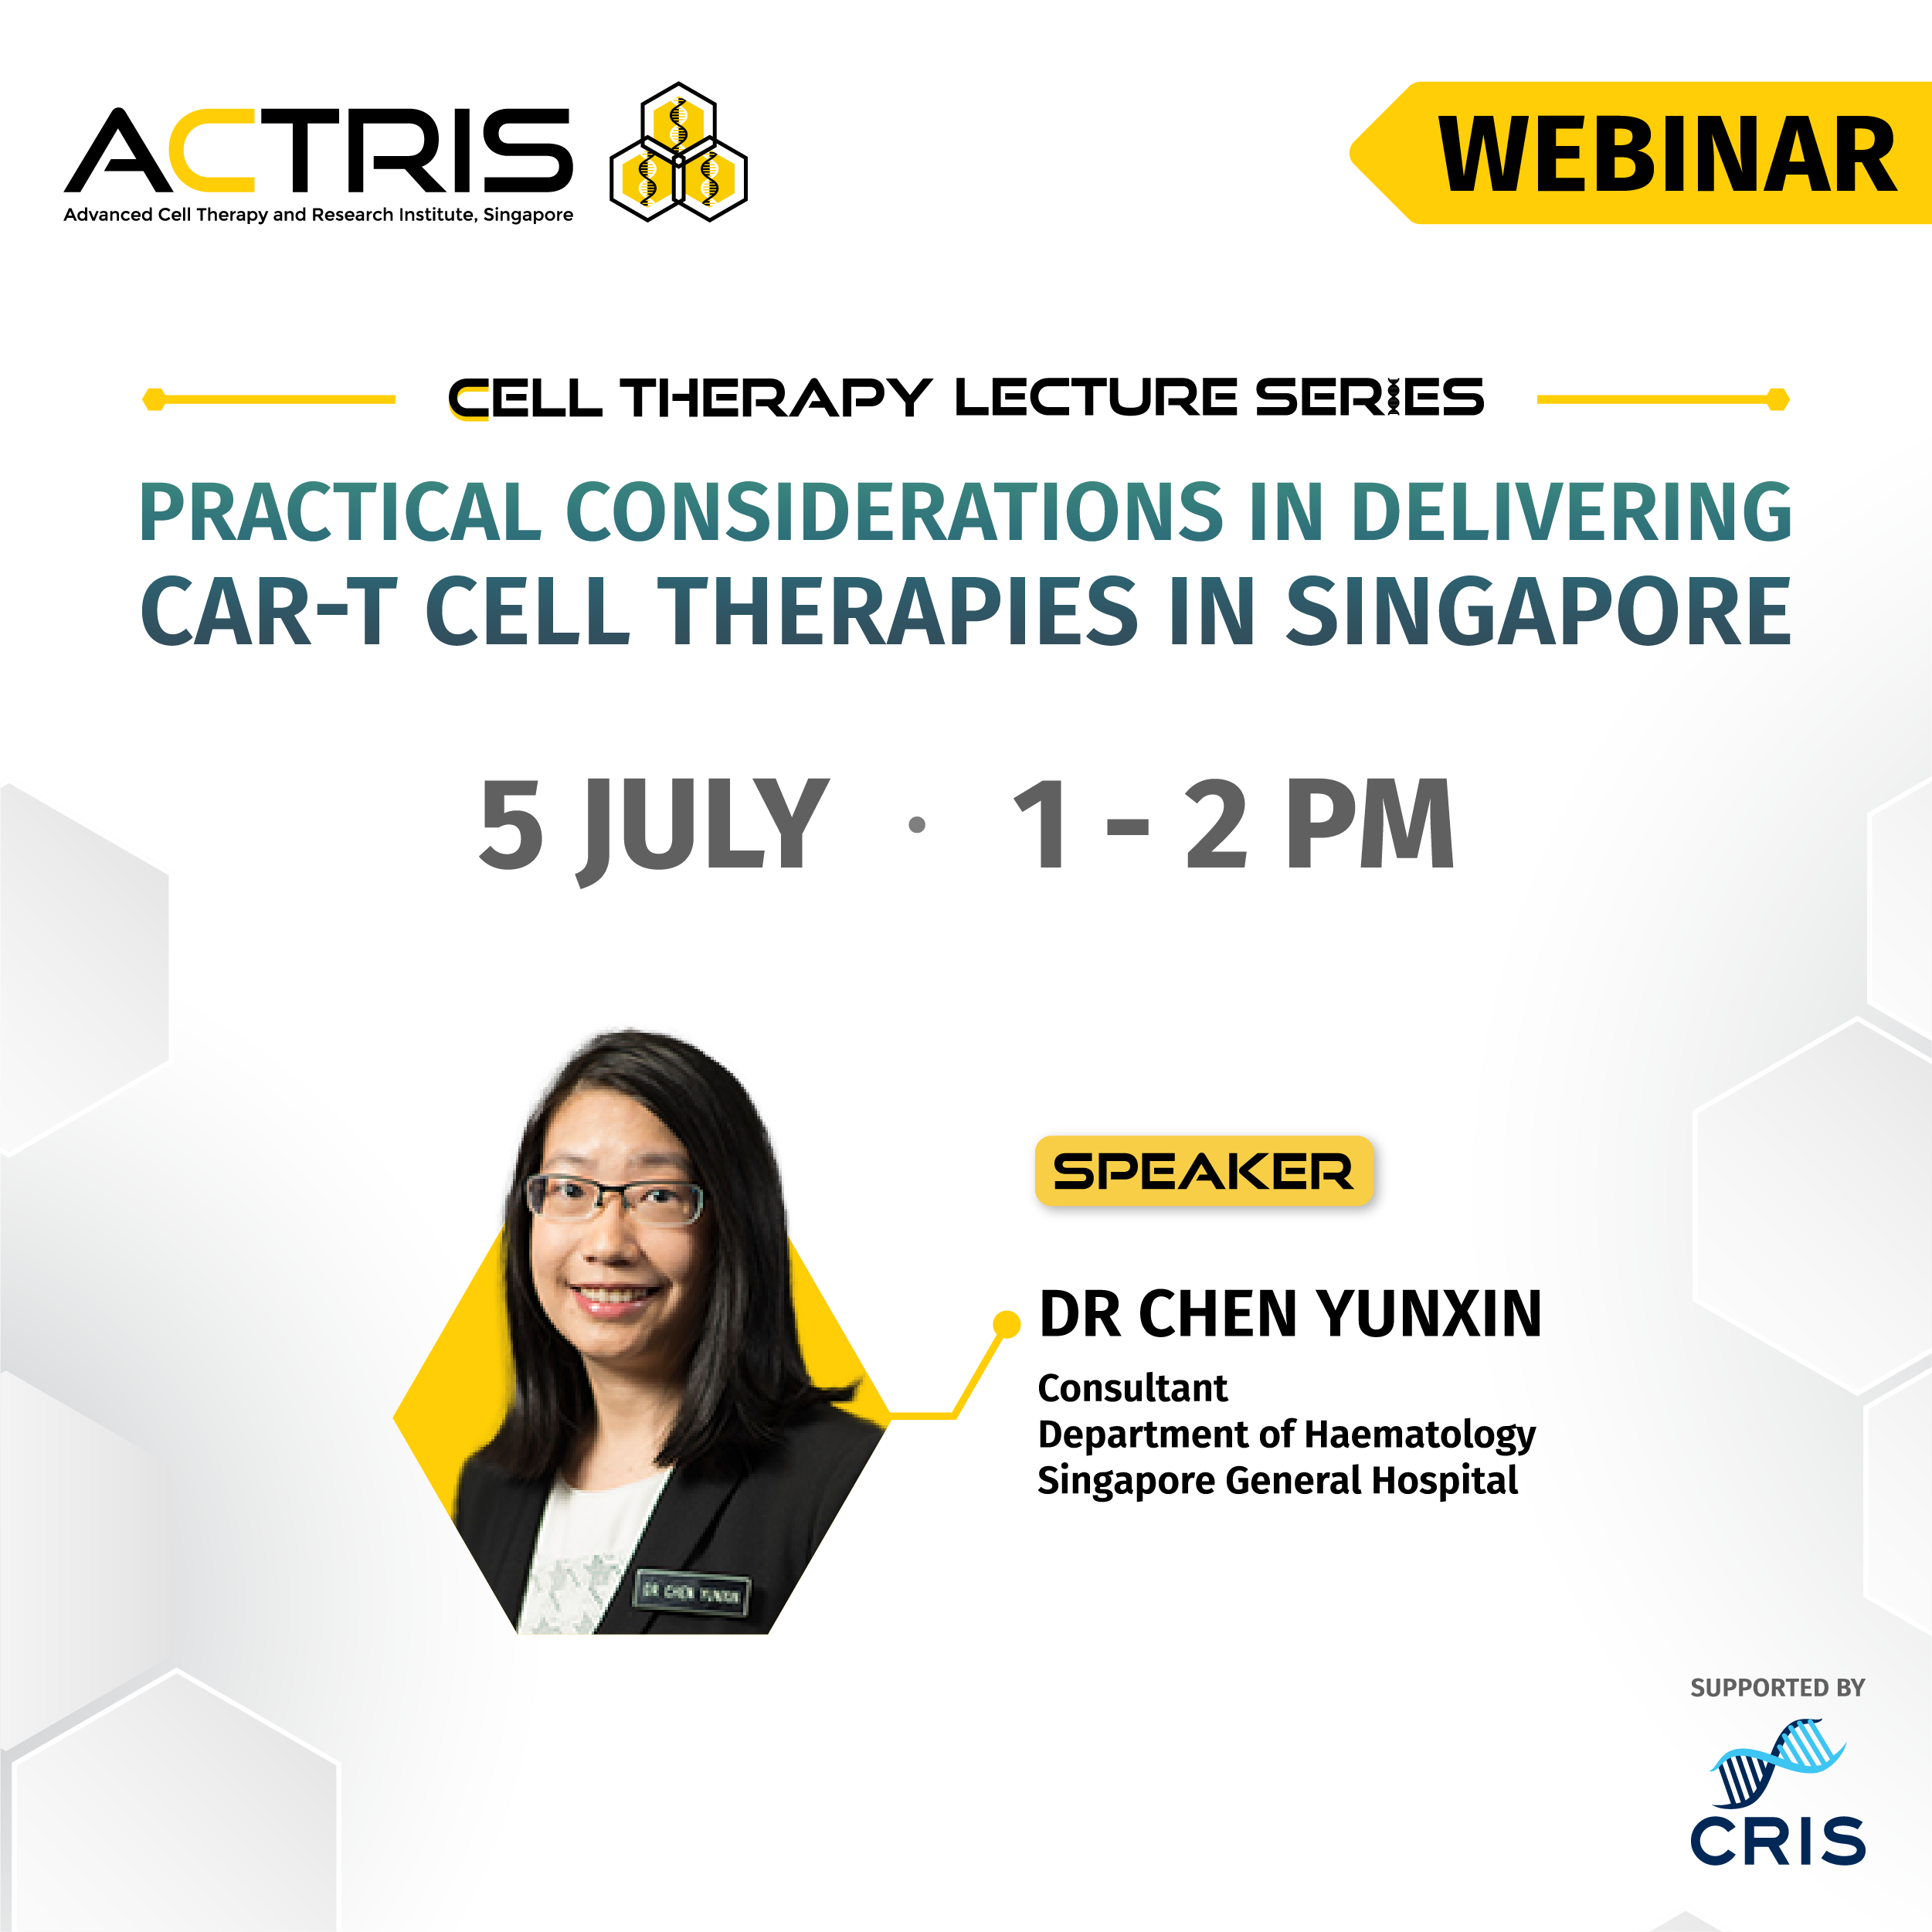 Practical Considerations in Delivering CAR-T Cell Therapies in Singapore